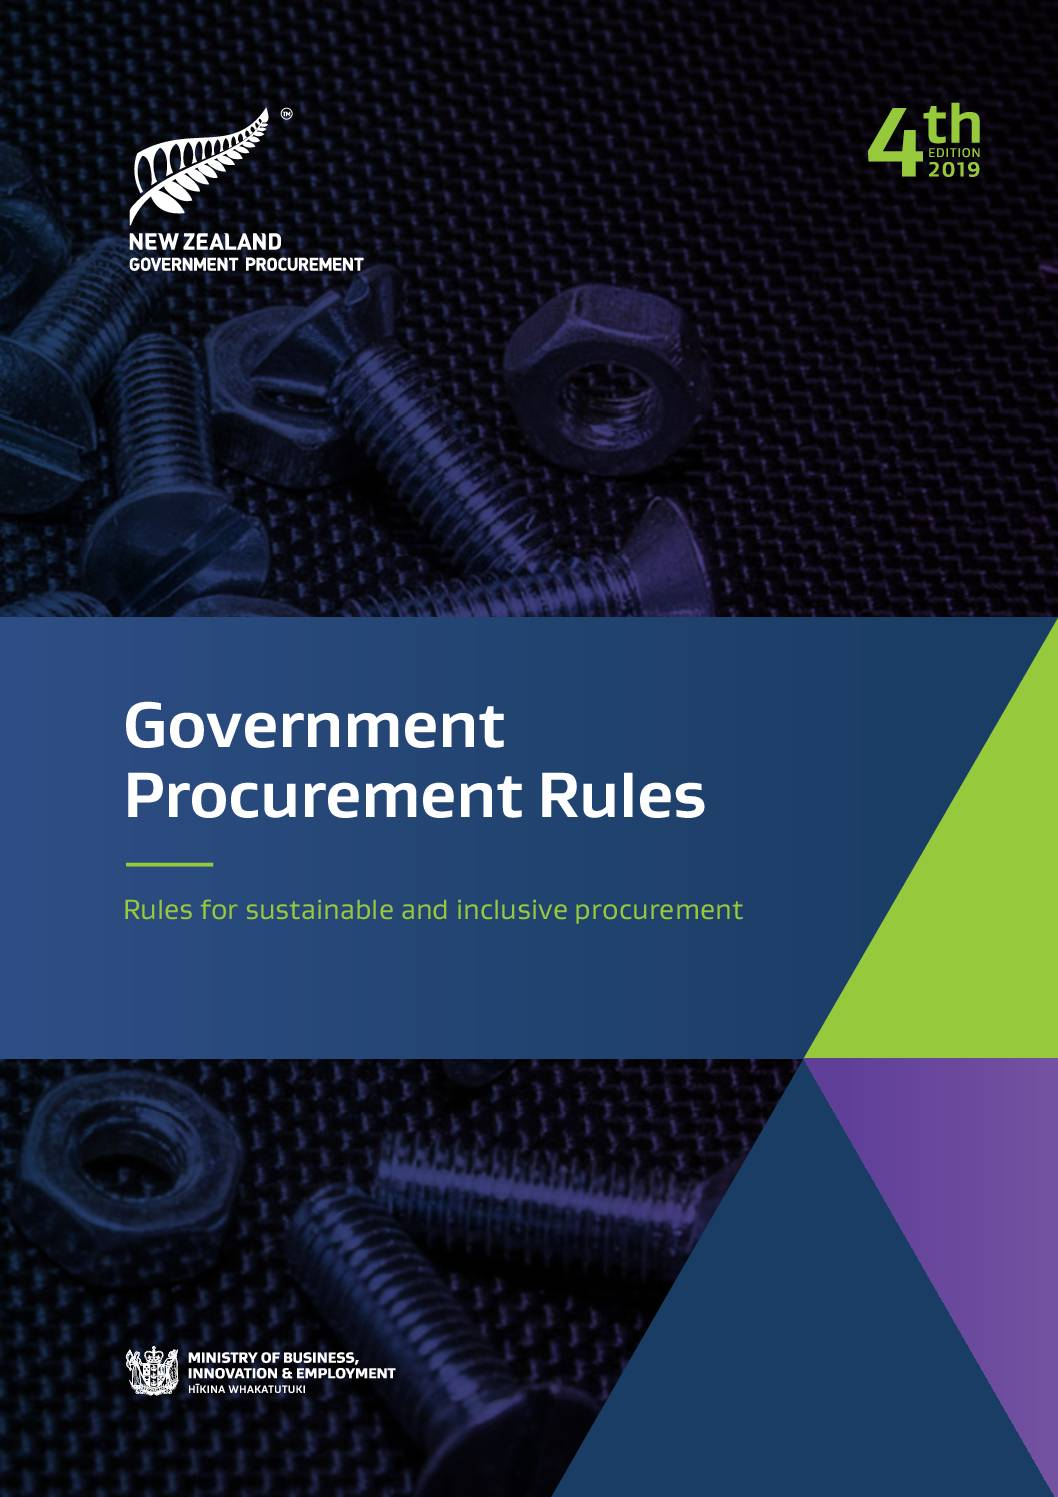 New Zealand's Government Procurement Rules